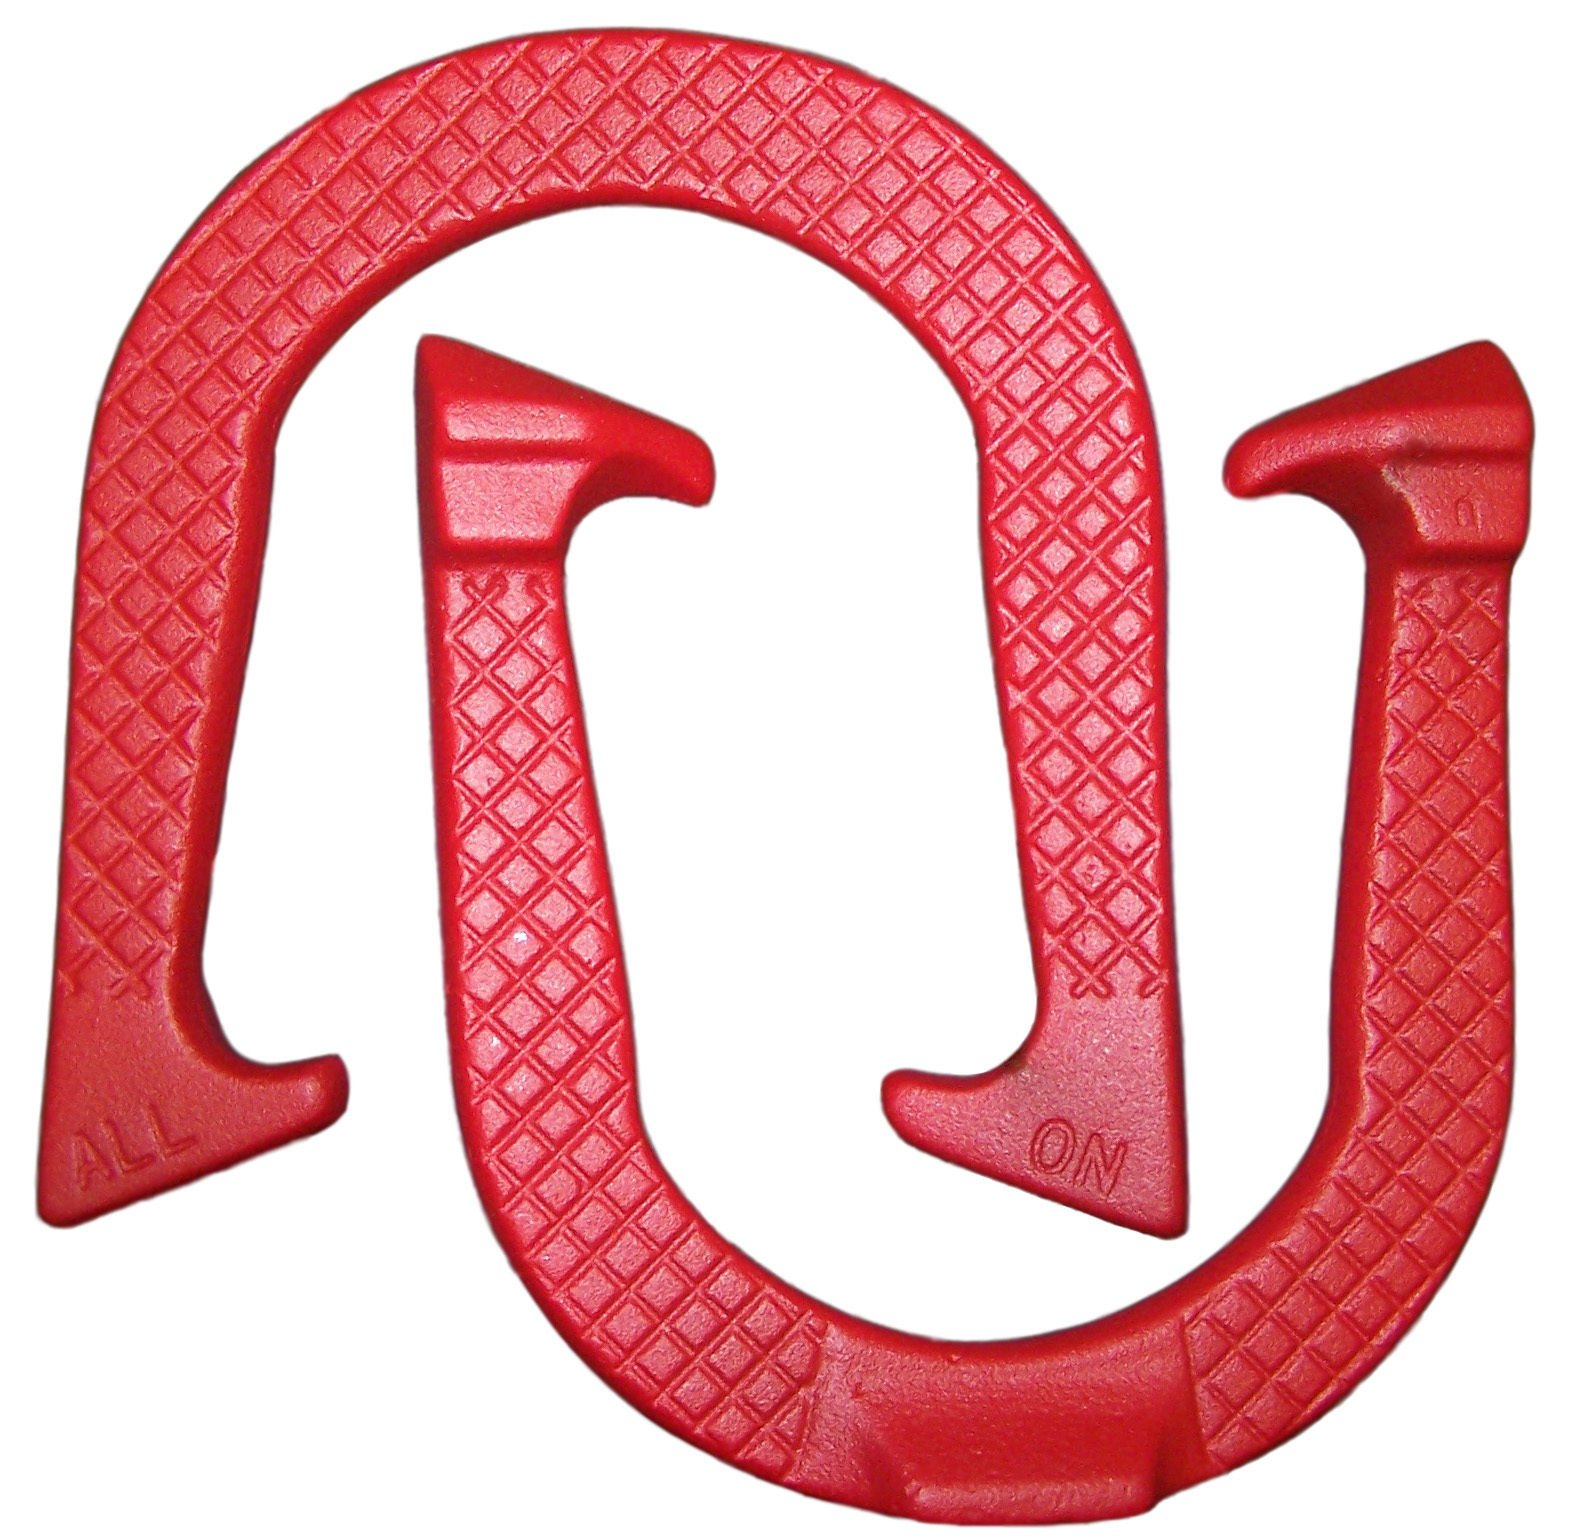 All-On Professional Pitching Horseshoes- Made in The USA! (Red- Single Pair (2 Shoes))